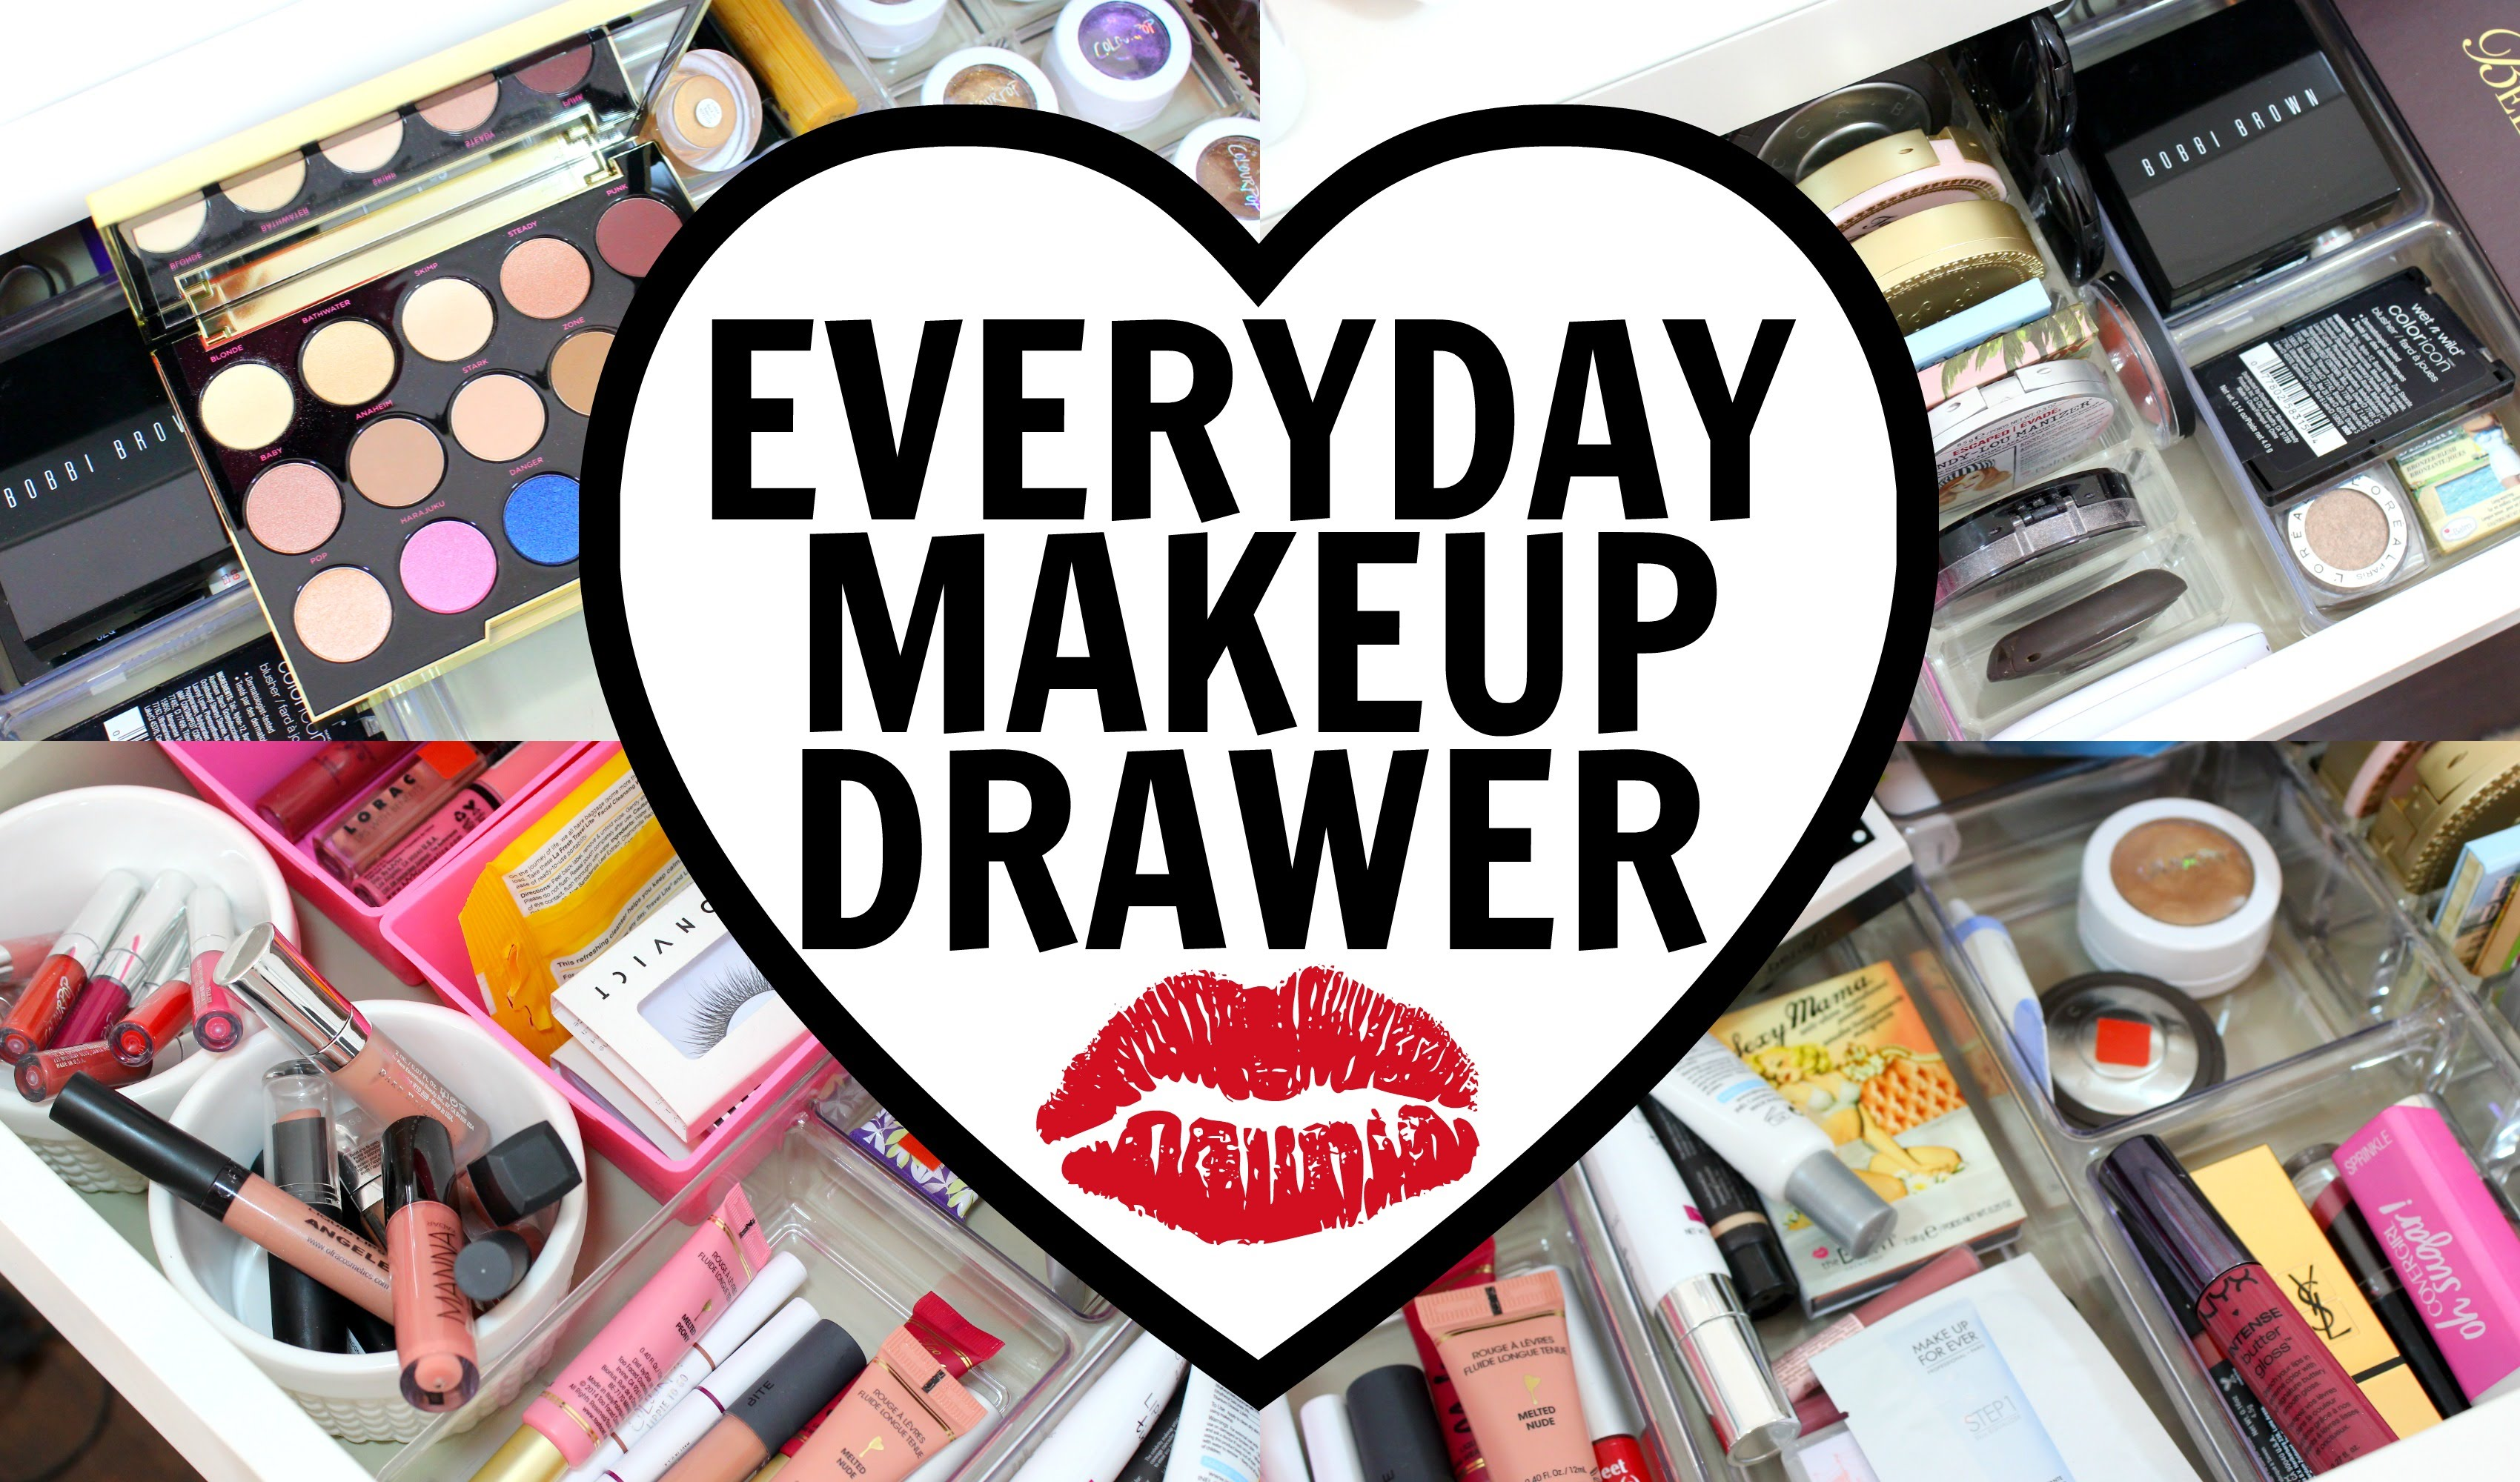 Everyday Makeup Drawer February 2016! | Part 10